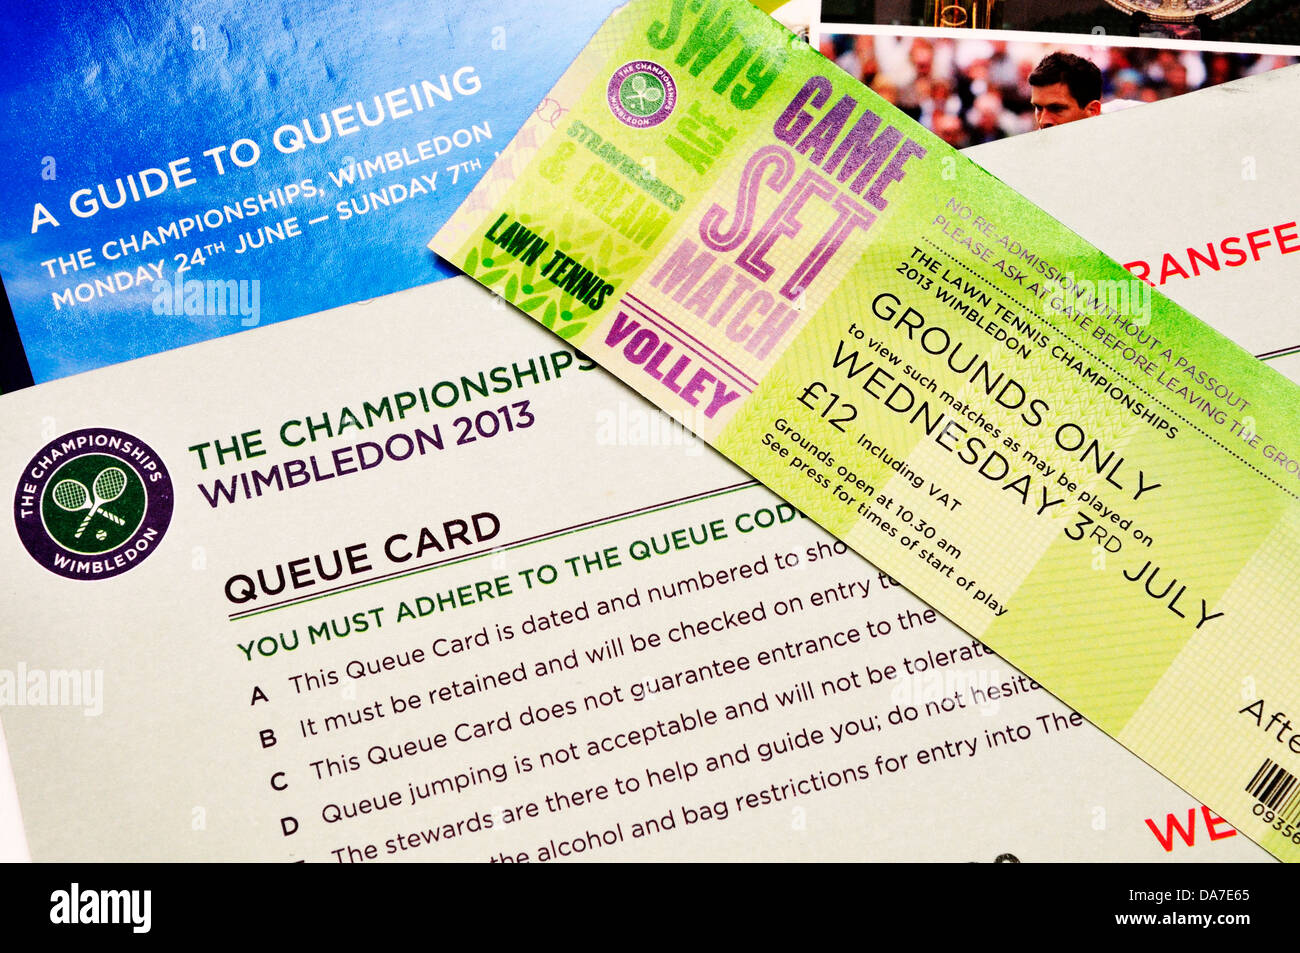 Wimbledon ticket 2013 - Late entry ground pass, queue card and 'A Guide to Queuing' - Stock Image